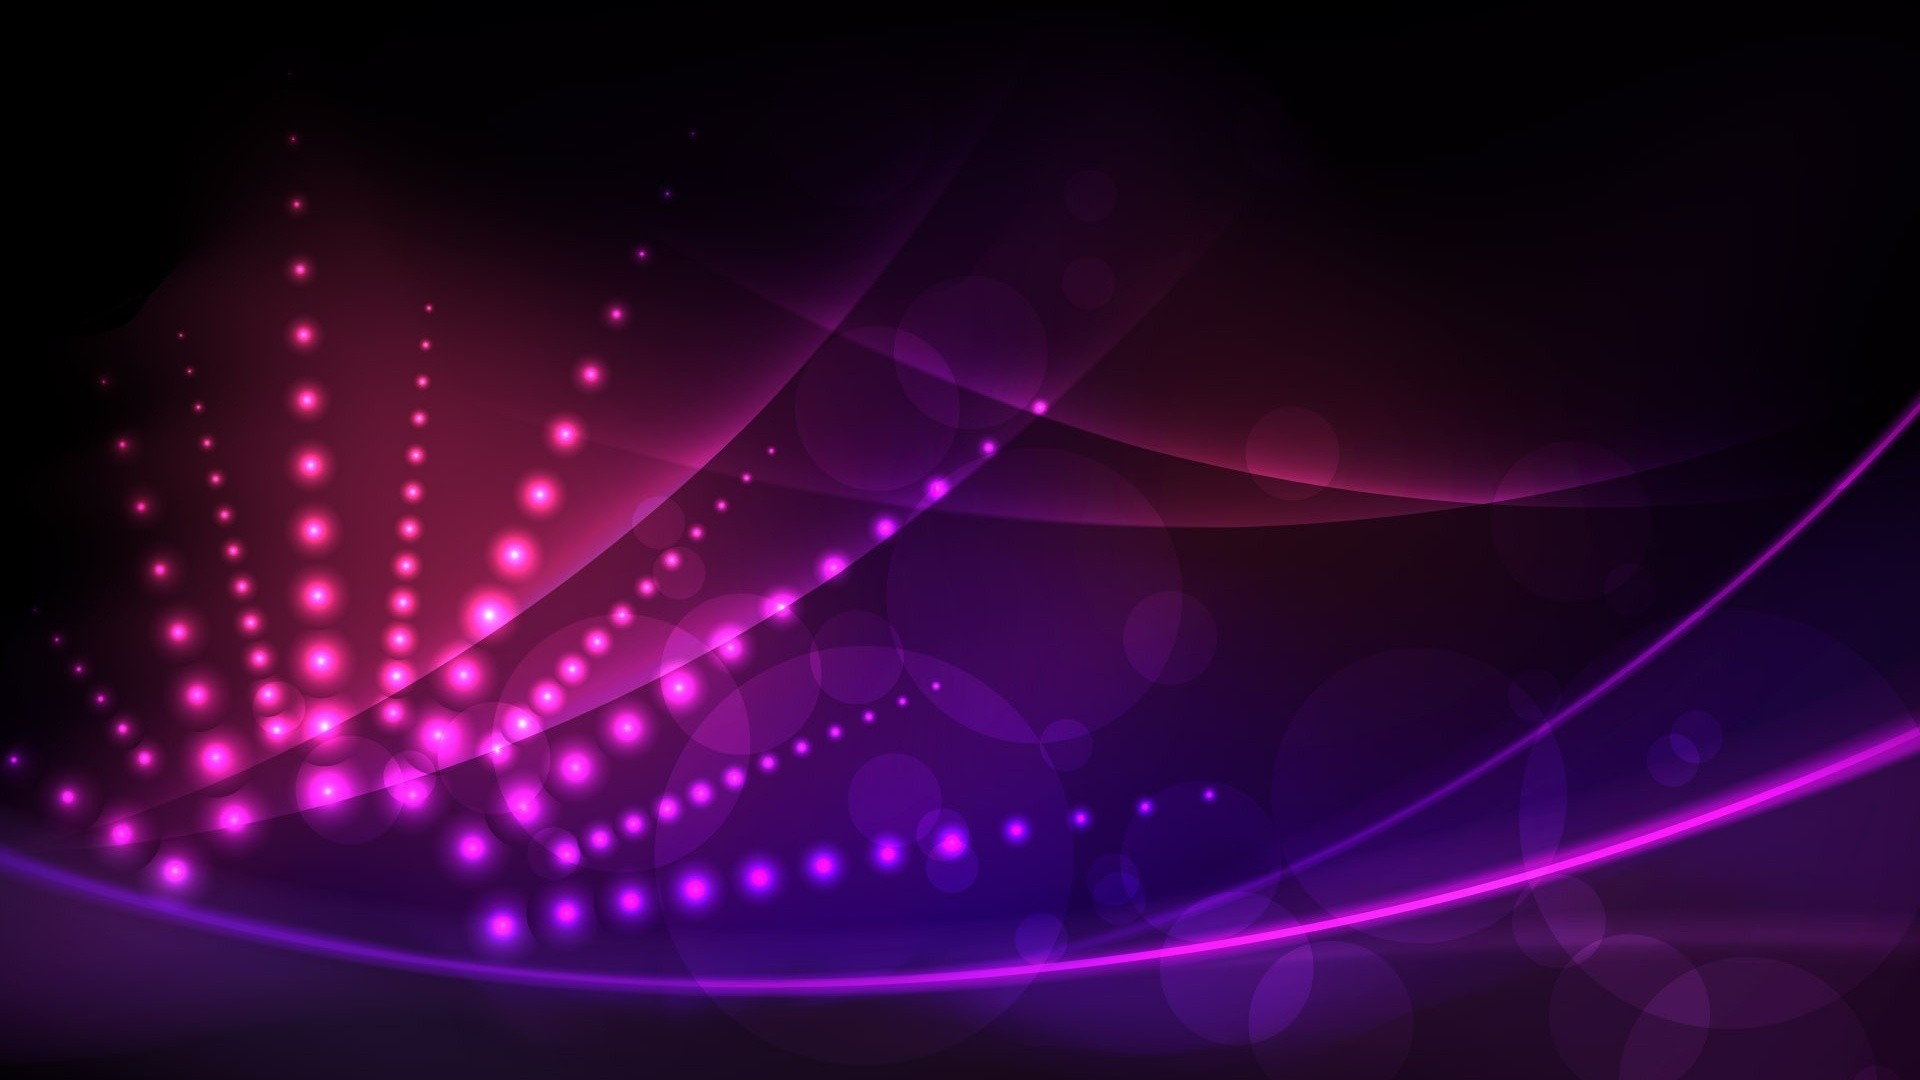 Led Light desktop background free